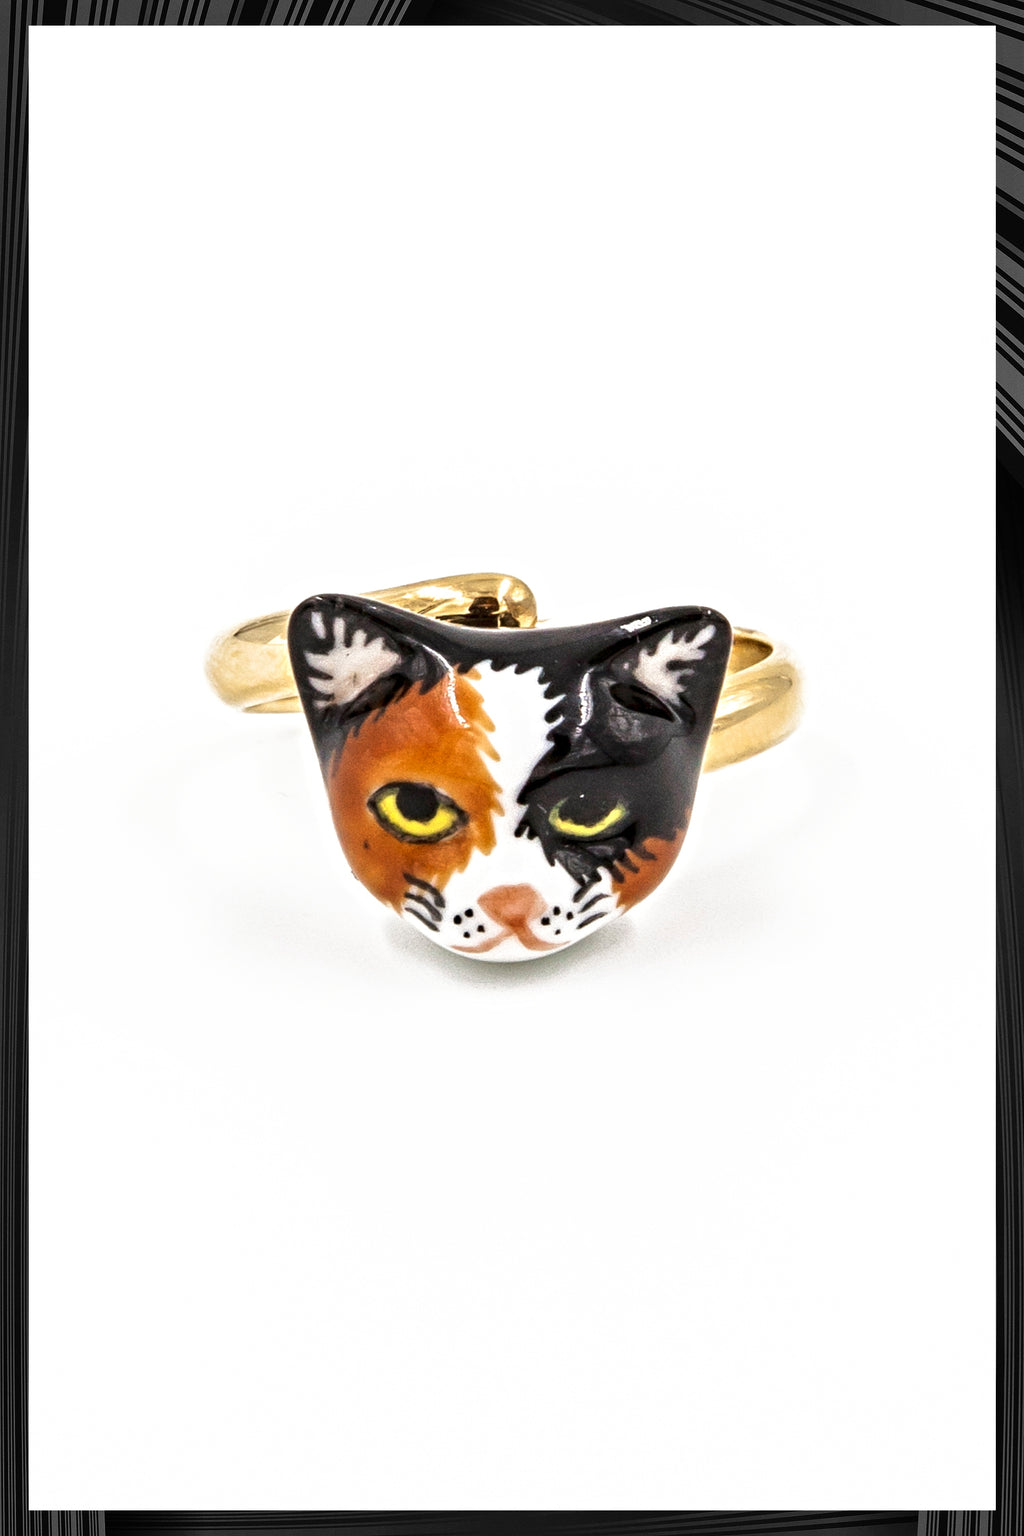 Calico Cat Gold Ring | Free Delivery - Quick Shipping